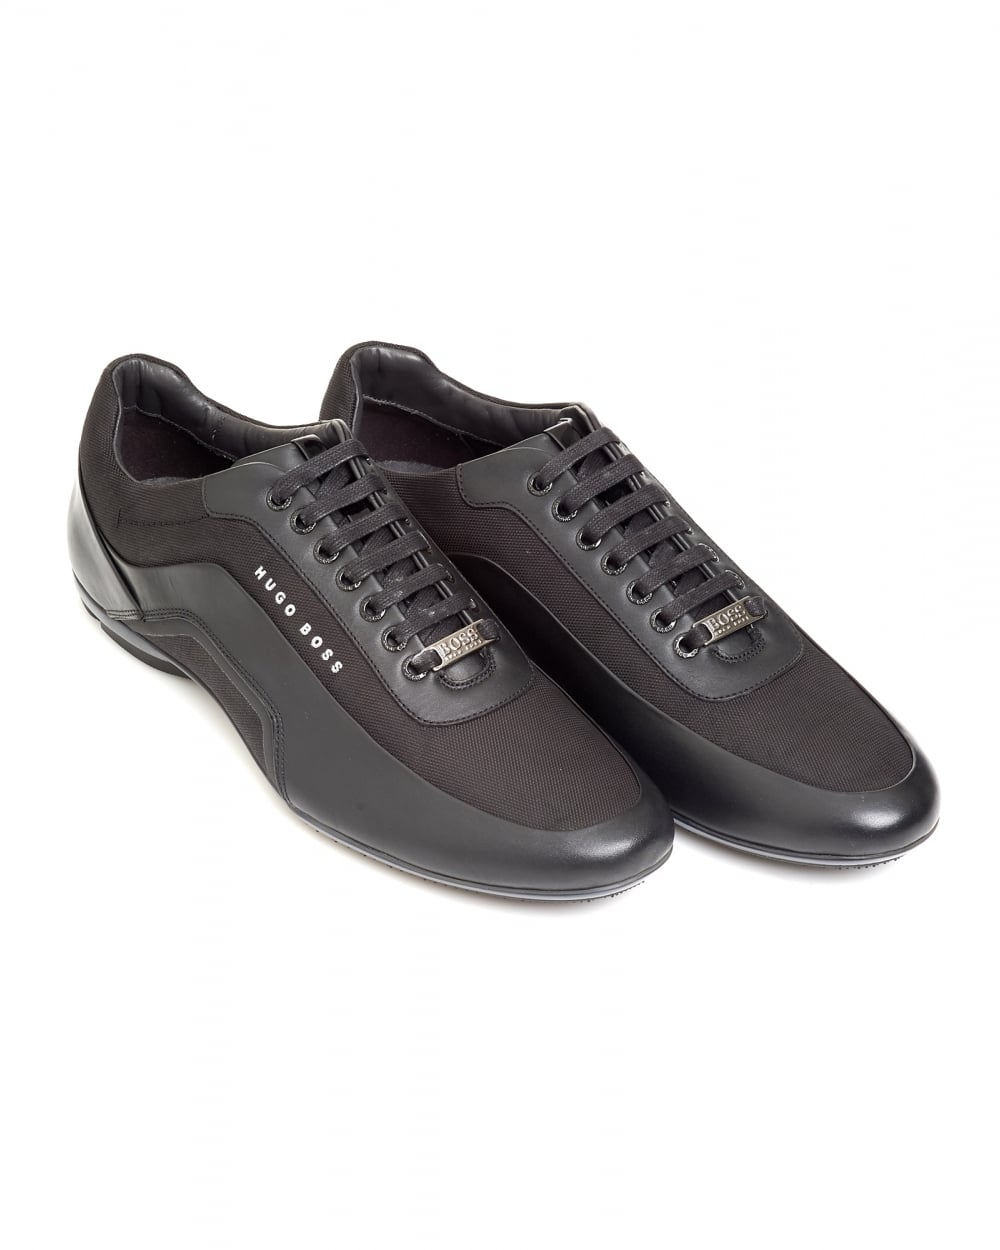 Wholesale Price Sale Online Trainers in leather and carbon fibre BOSS Under Sale Online Buy Cheap With Mastercard With Credit Card Online AJ8hIA2X5